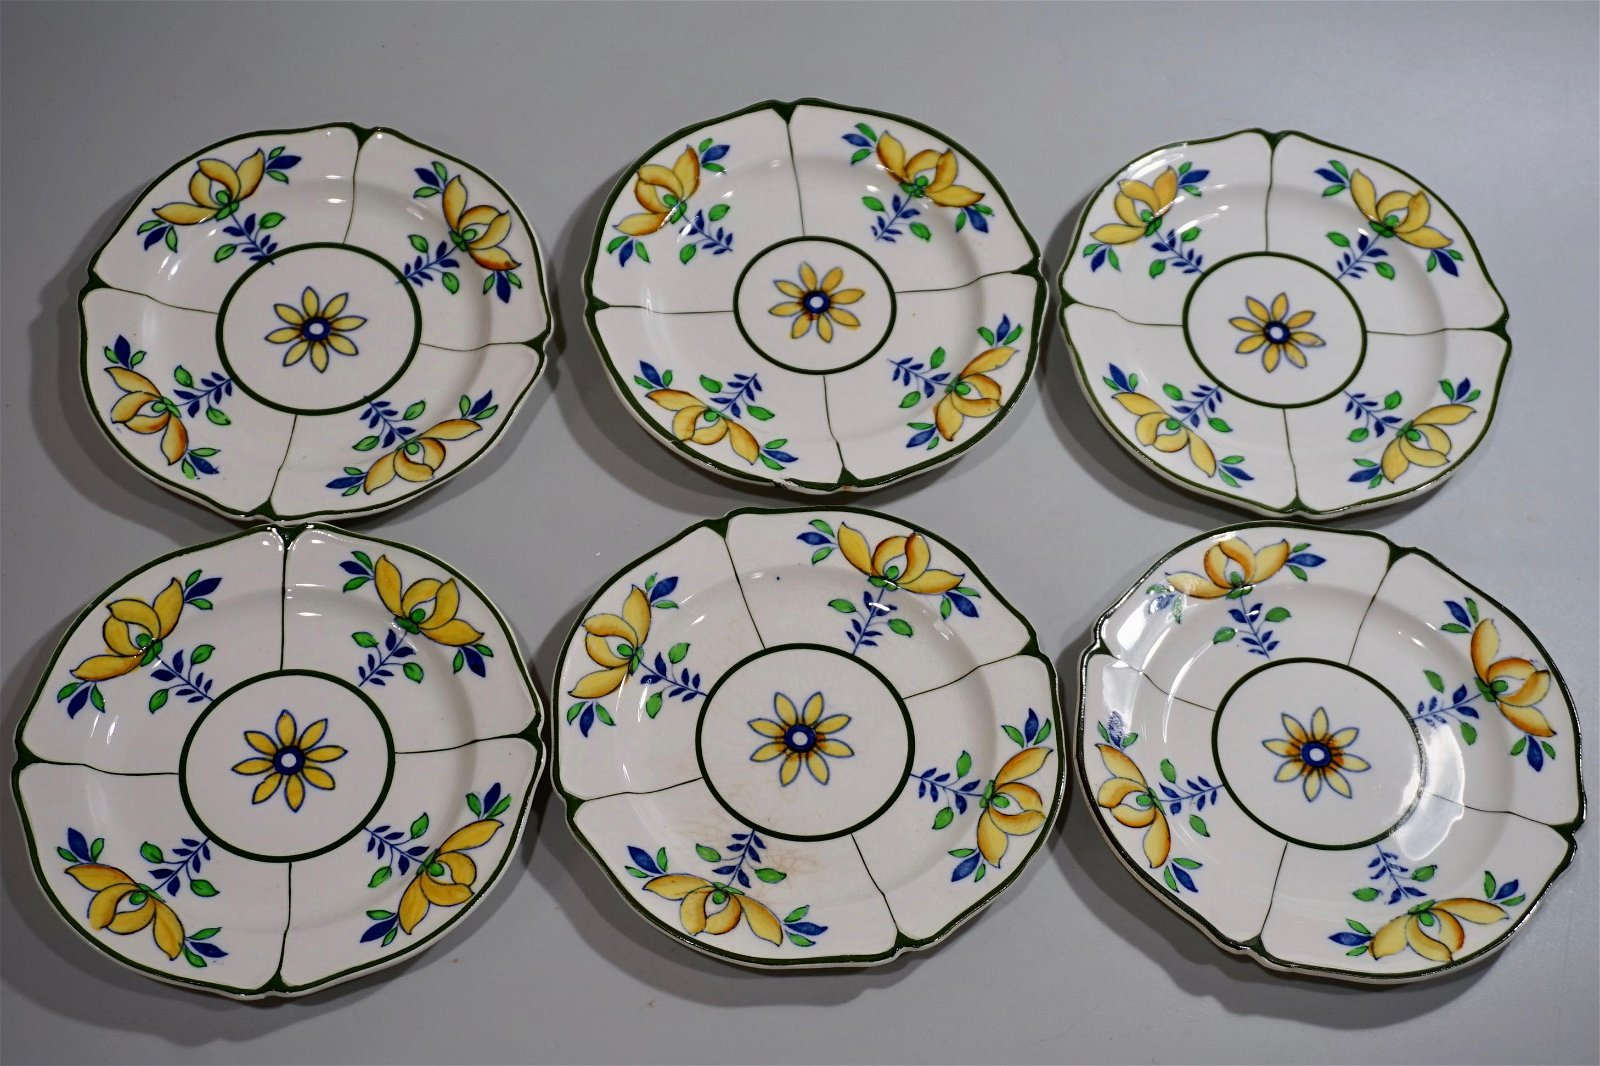 Woods and Son China Small Plate Saucer Lot of 6 Antique